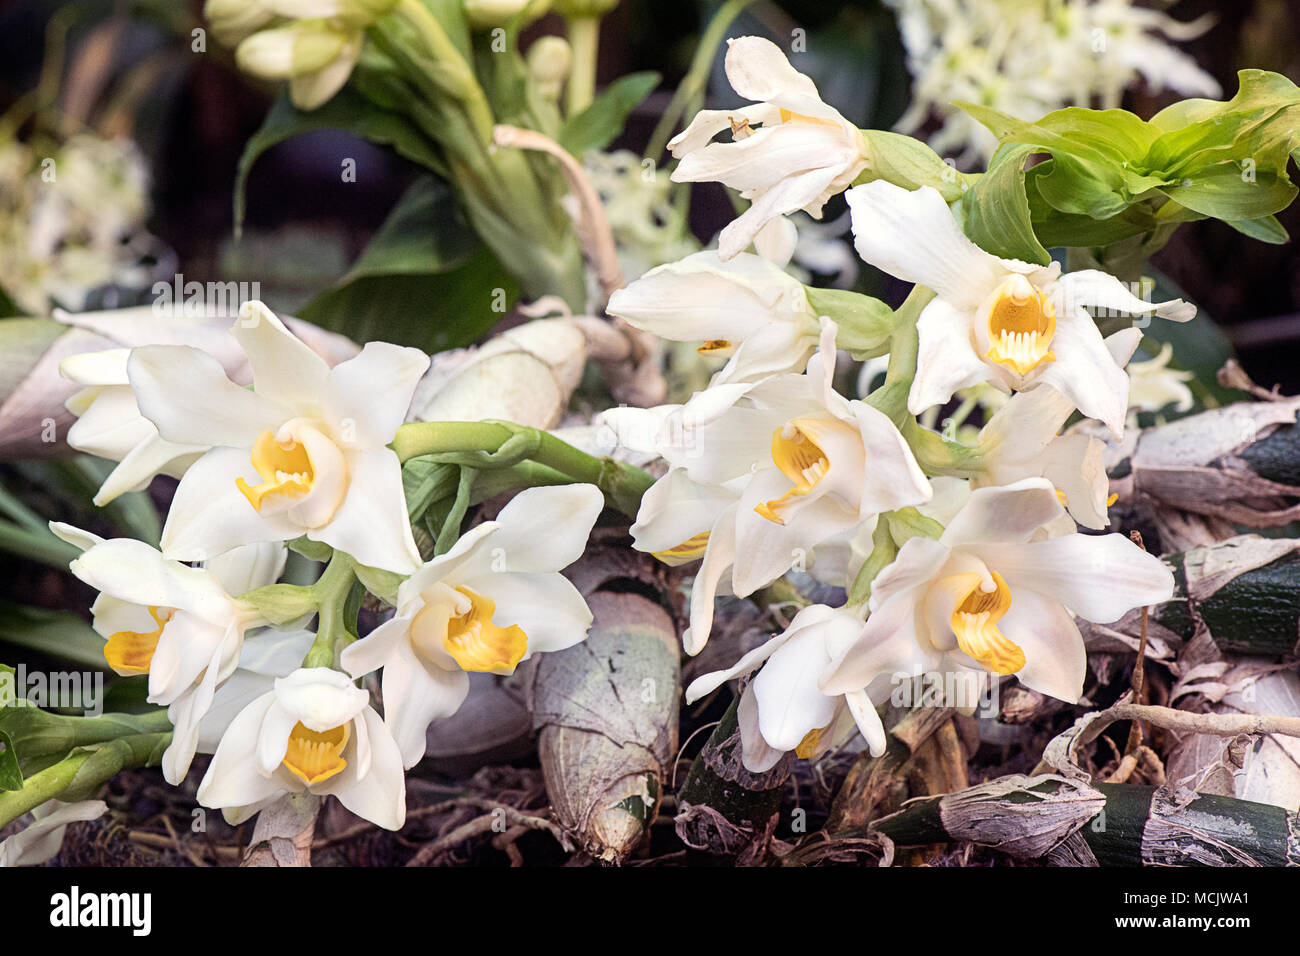 Close up of Chysis bractescens orchid - Stock Image